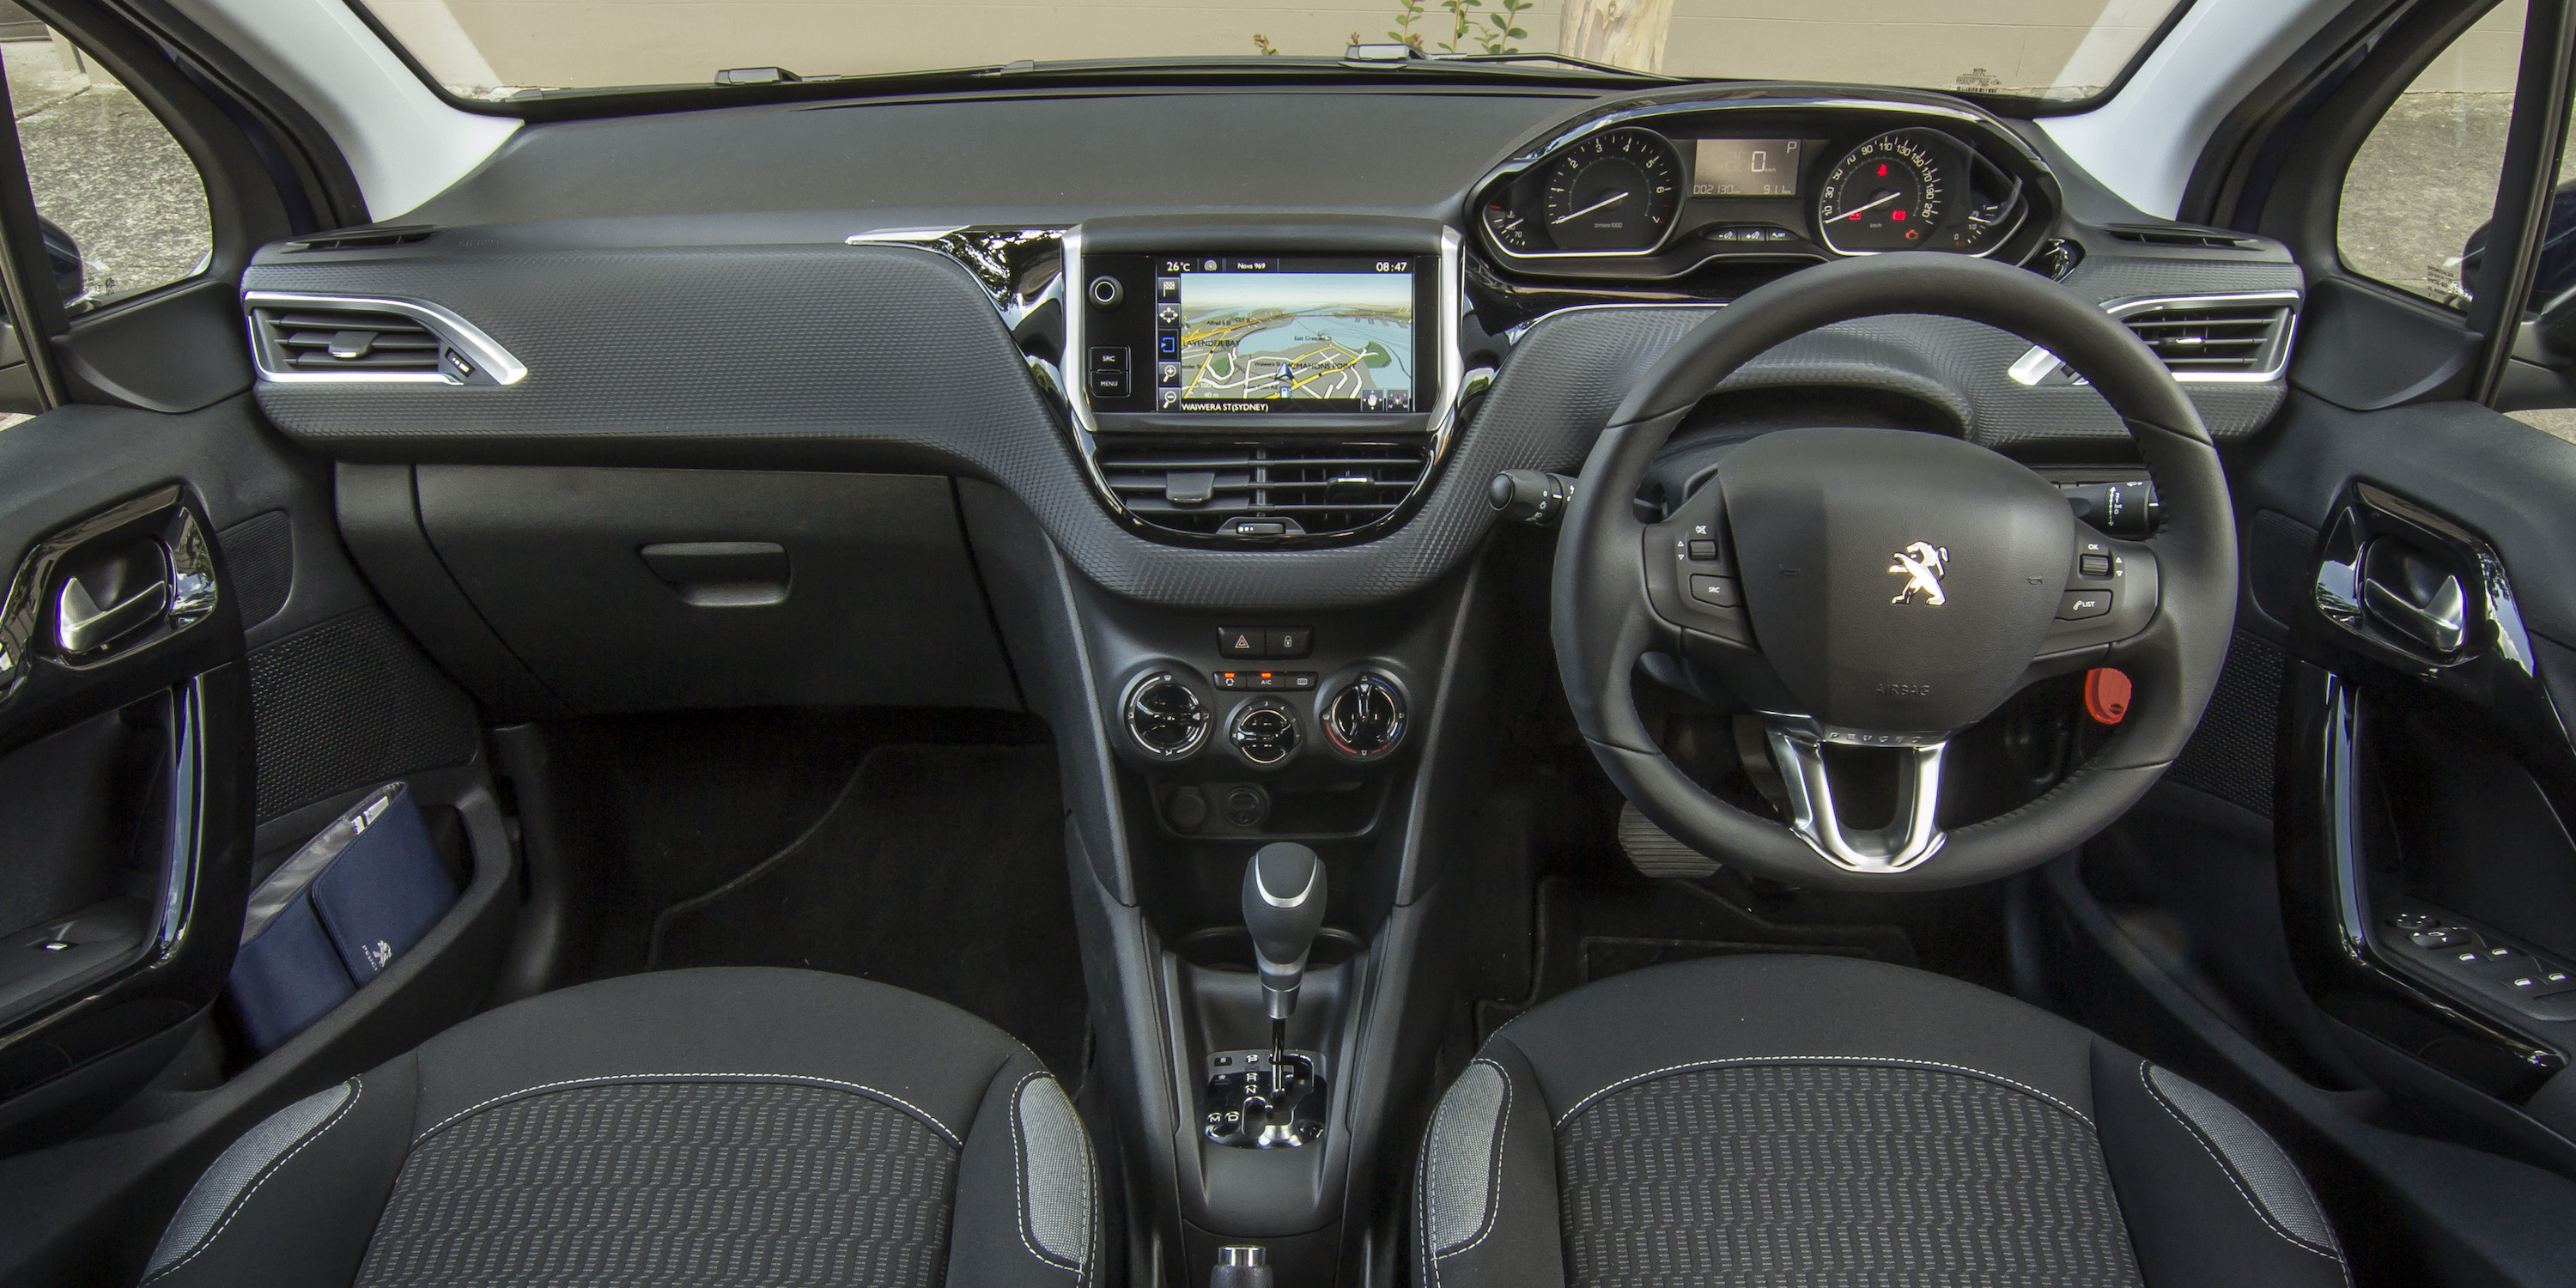 2016 Peugeot 208 Active Interior Preview